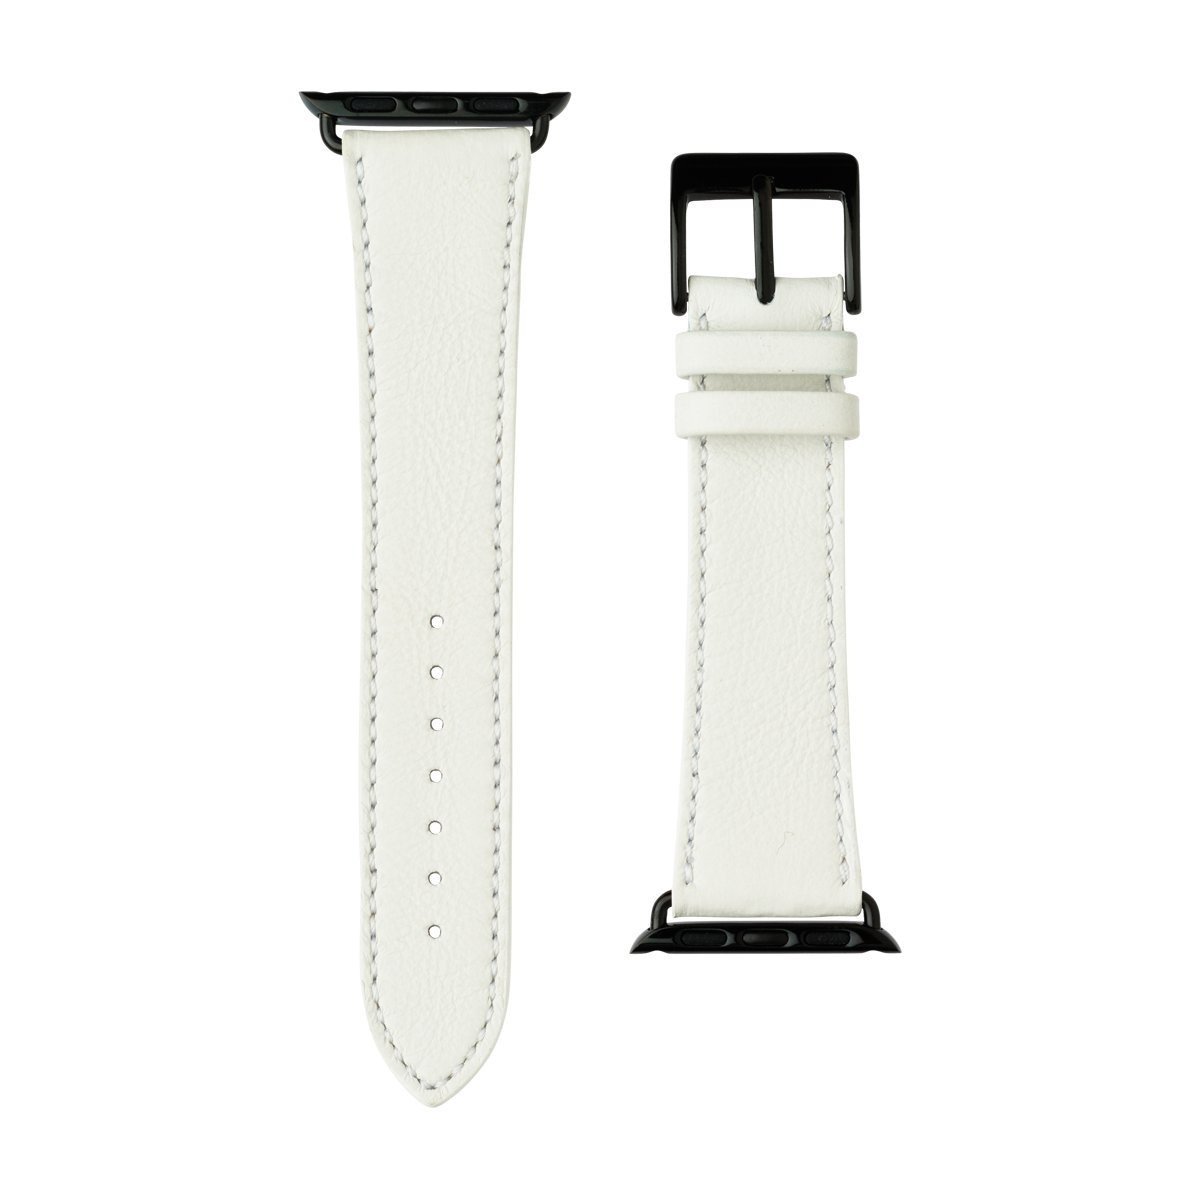 Roobaya | Premium Sauvage Leather Apple Watch Band in White | Includes Adapters matching the Color of the Apple Watch, Case Color:Space Black Stainless Steel, Size:42 mm by Roobaya (Image #2)